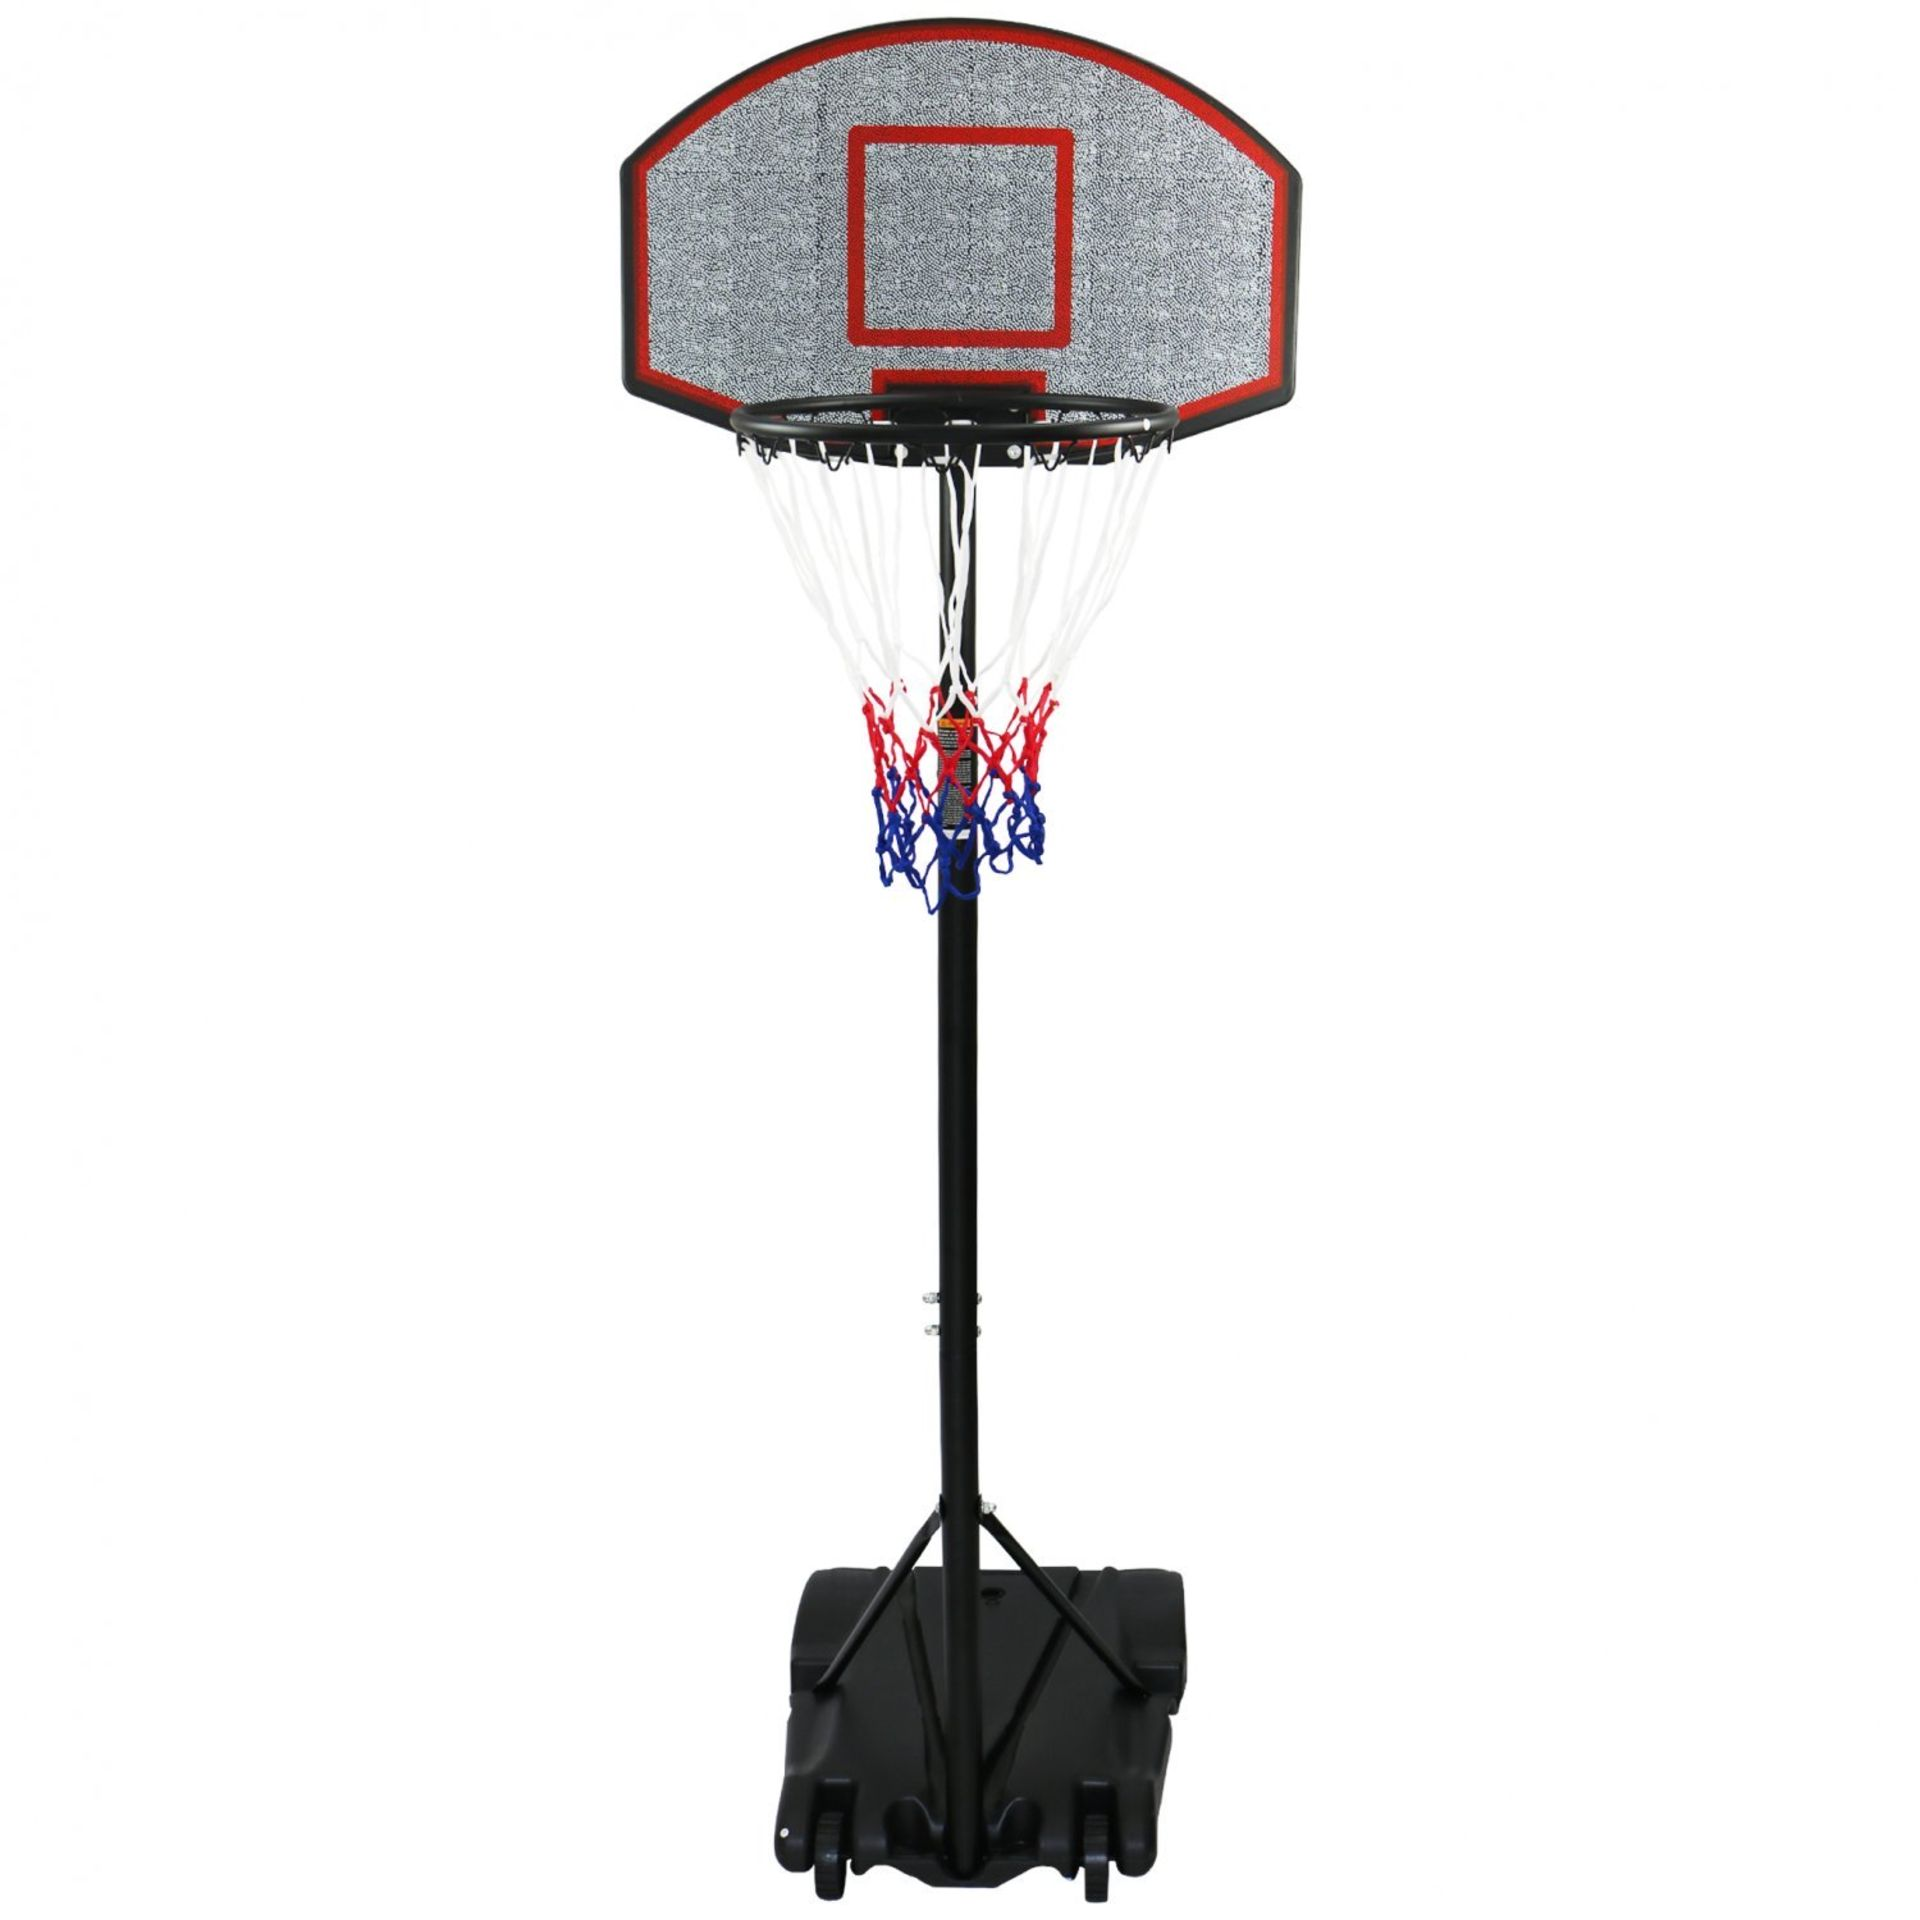 Lot 100 - (RL72) Professional Kids Adjustable Portable Basketball Net 1.7m - 2.1m Any true basketball ...